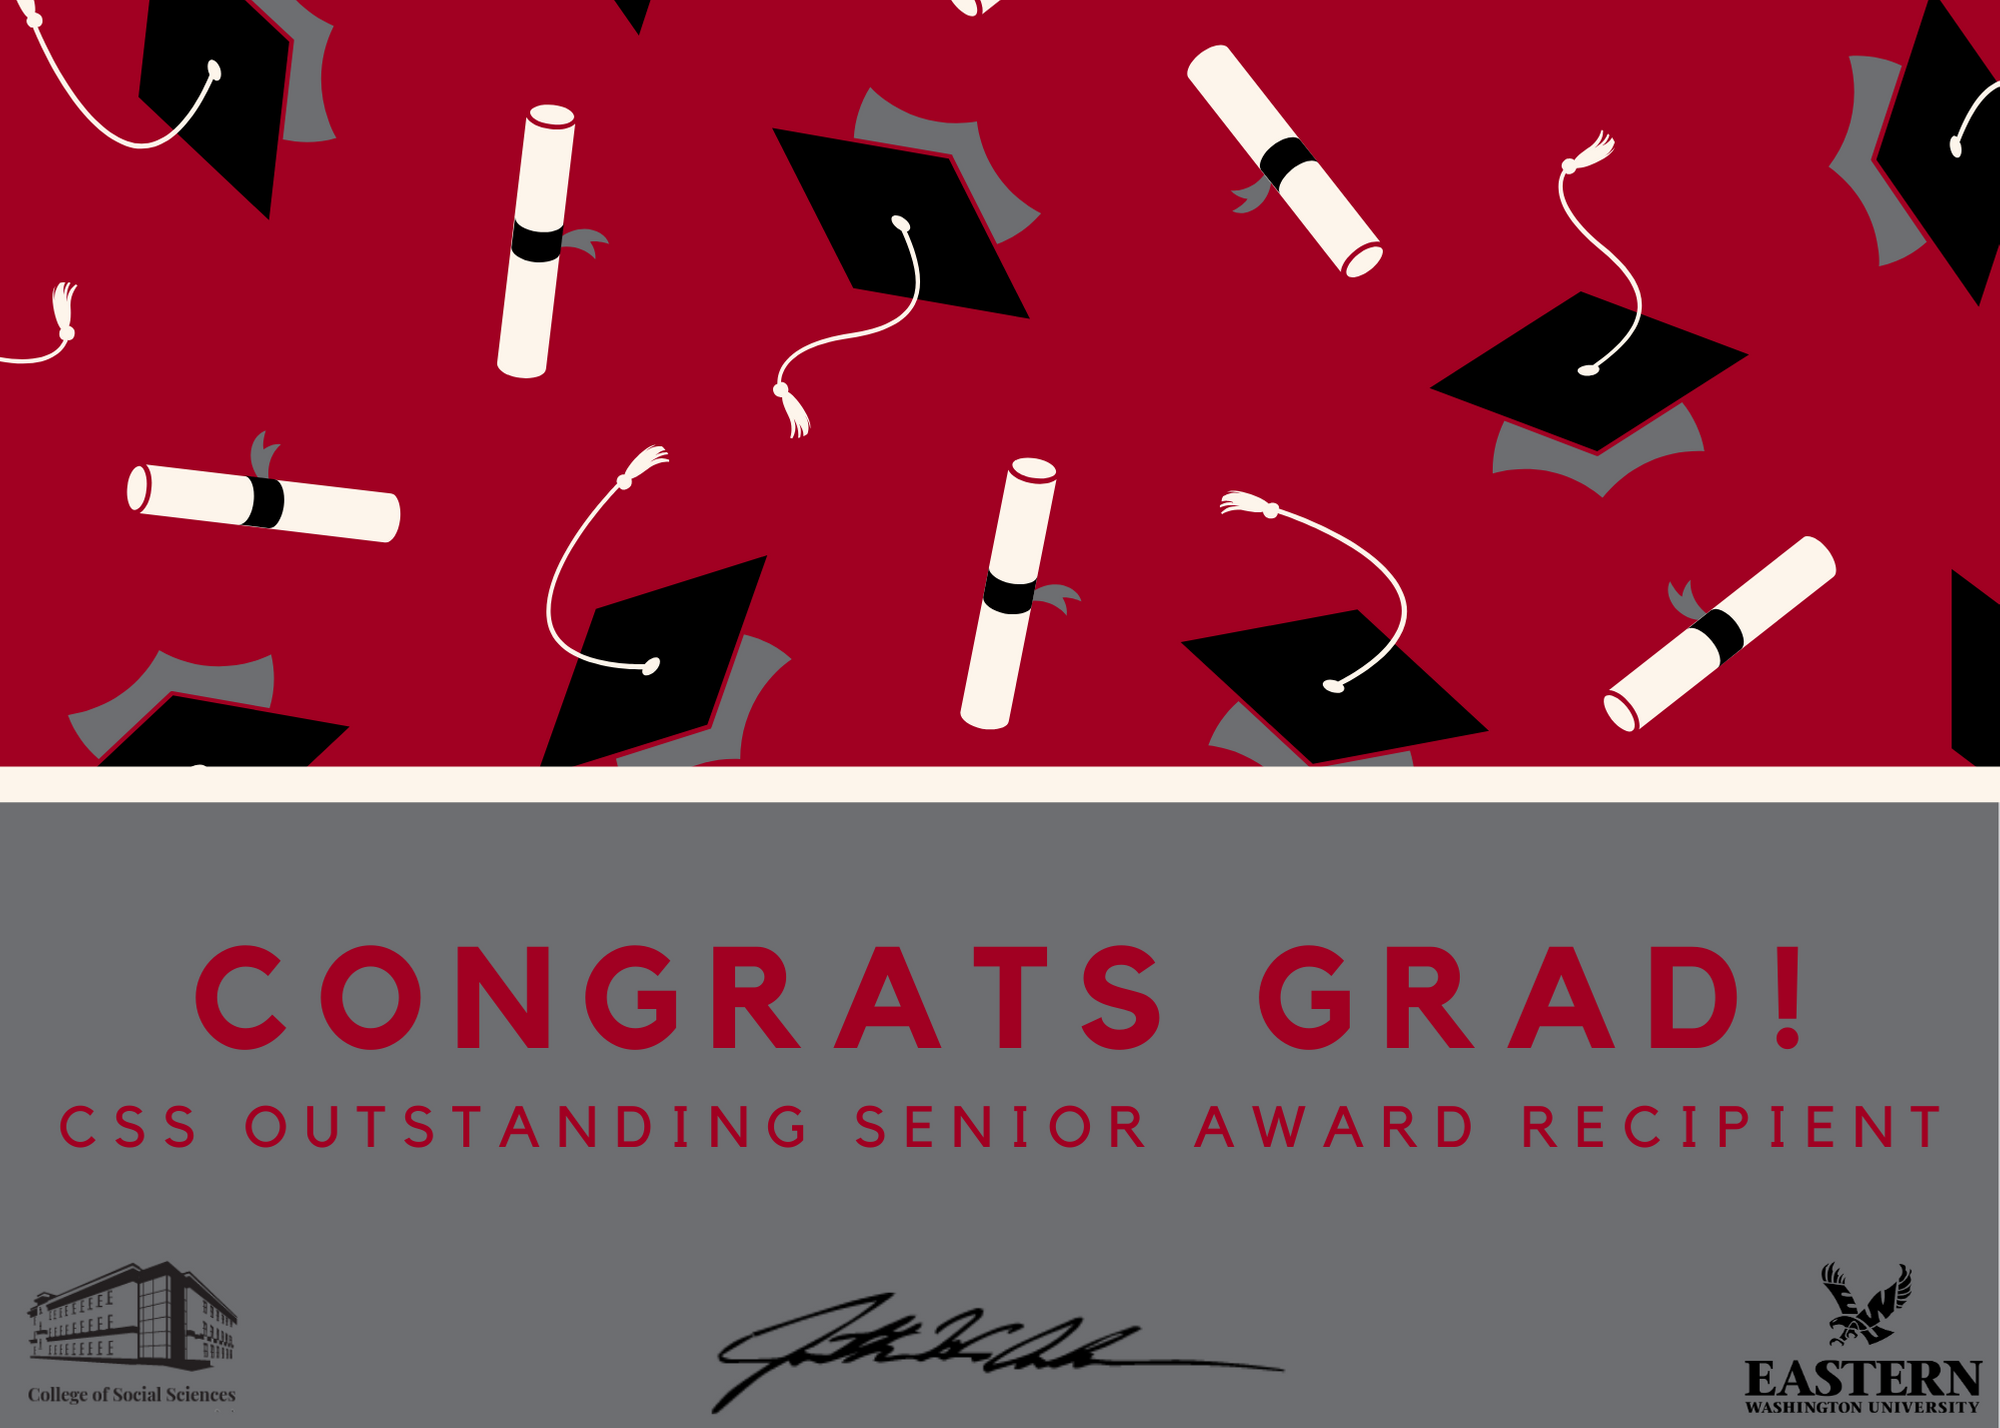 3769-caps-and-diplomas-pattern-graduation-card-2.png